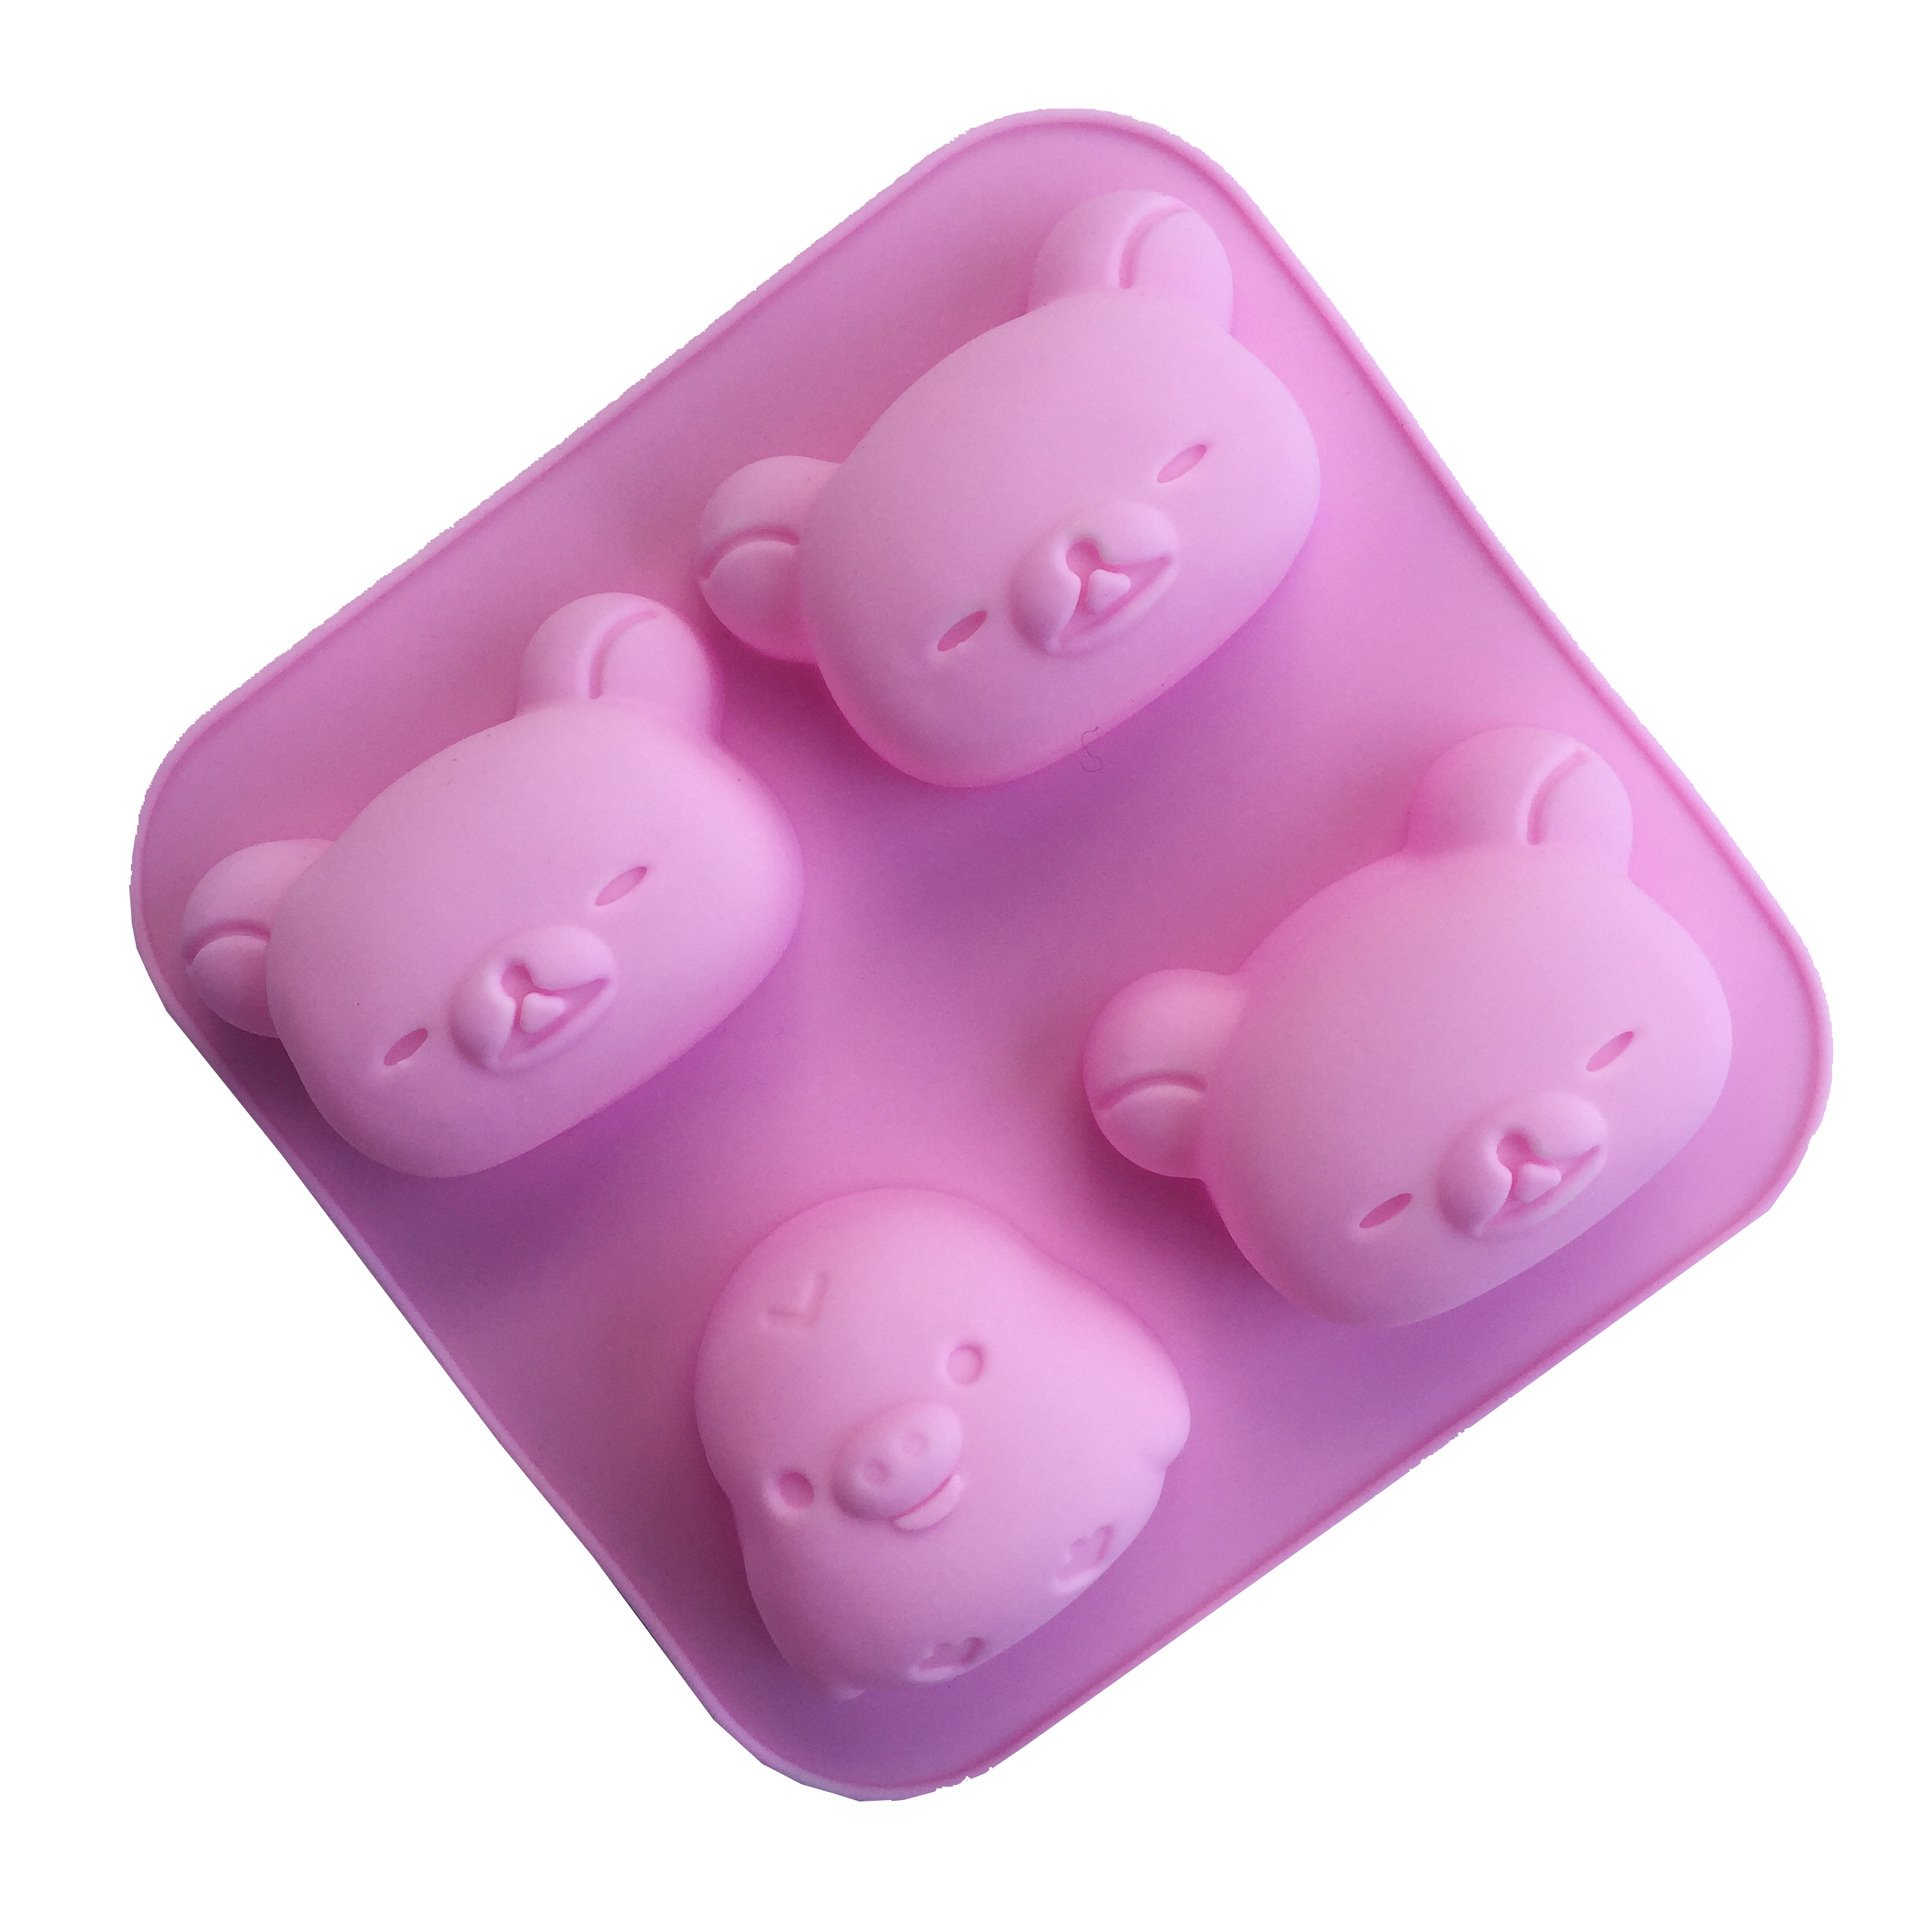 Always Your Chef Silicone Chicken Bear Soap Molds/Cake Molds/Jello Molds, Baking Molds for Candy,Chocolate and More, Random Colors